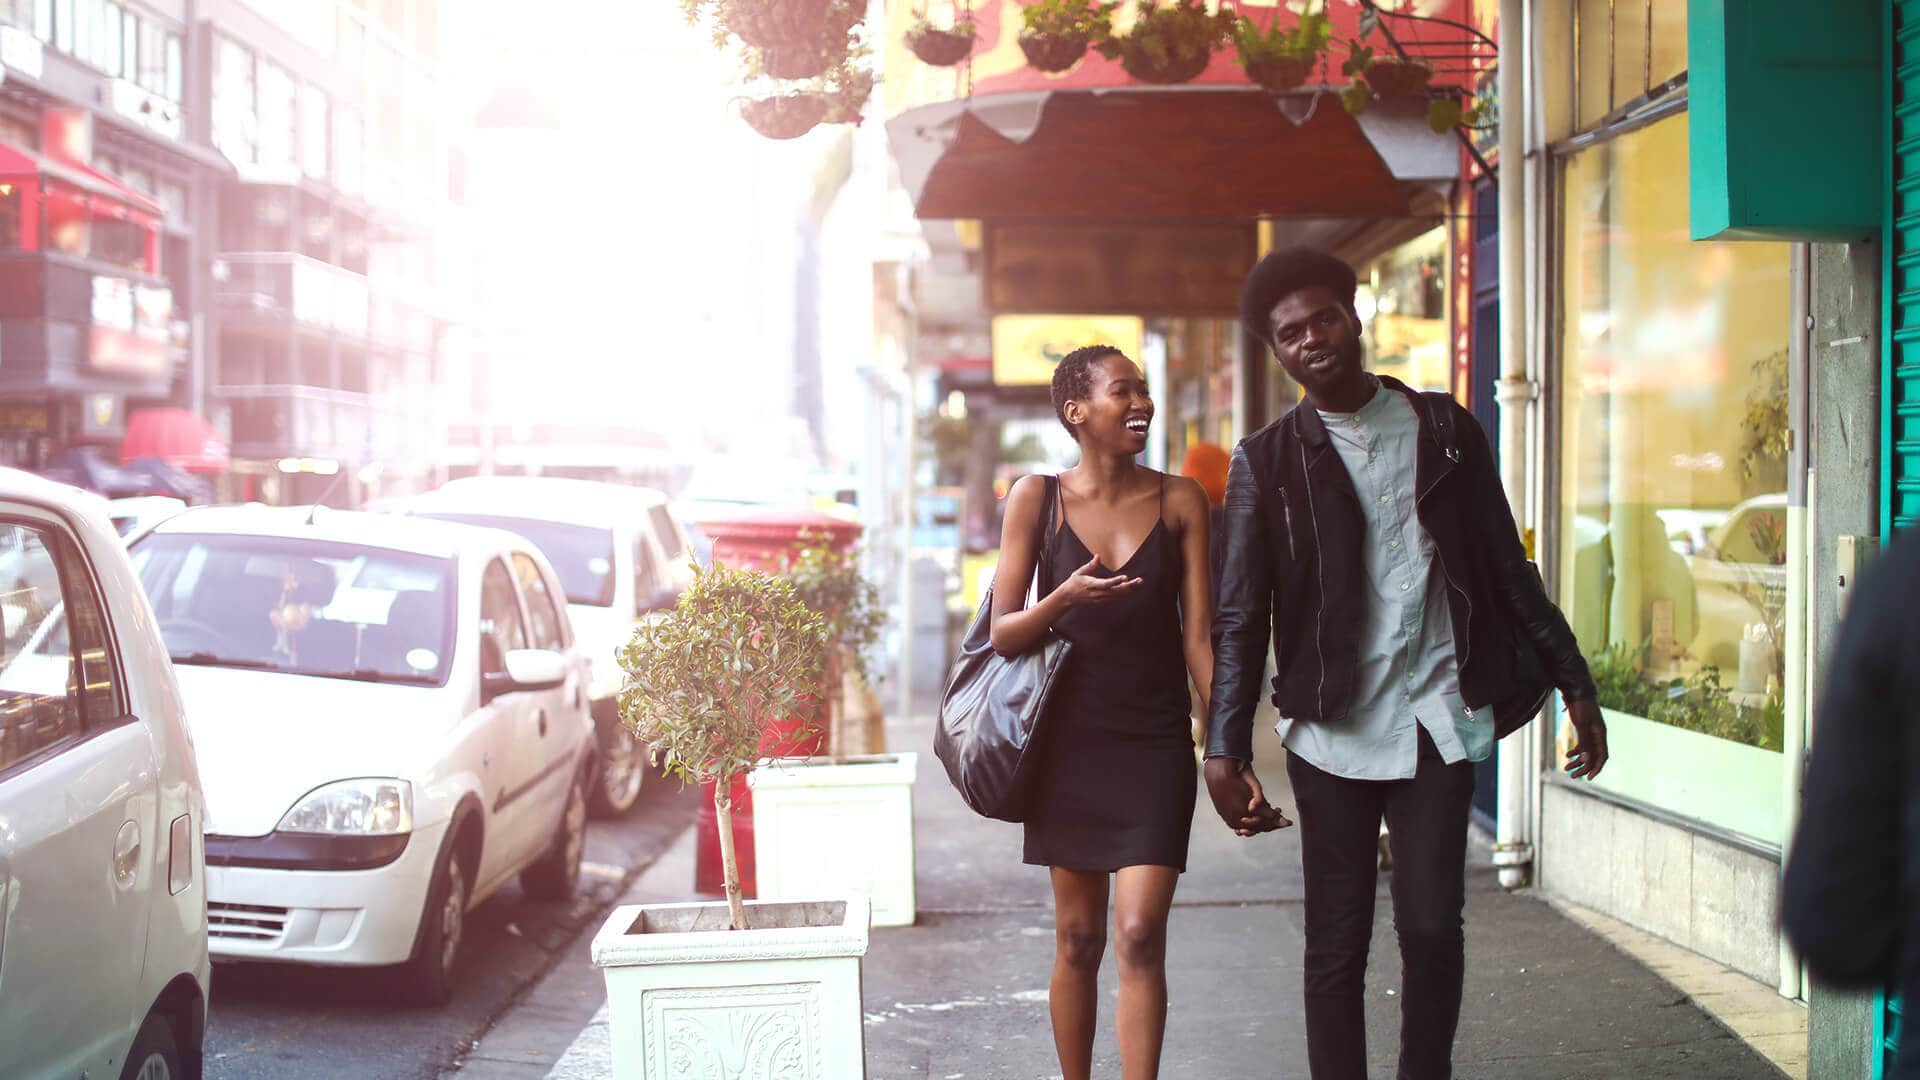 African dating symbolized by a man and woman strolling hand in hand through the city on their first date